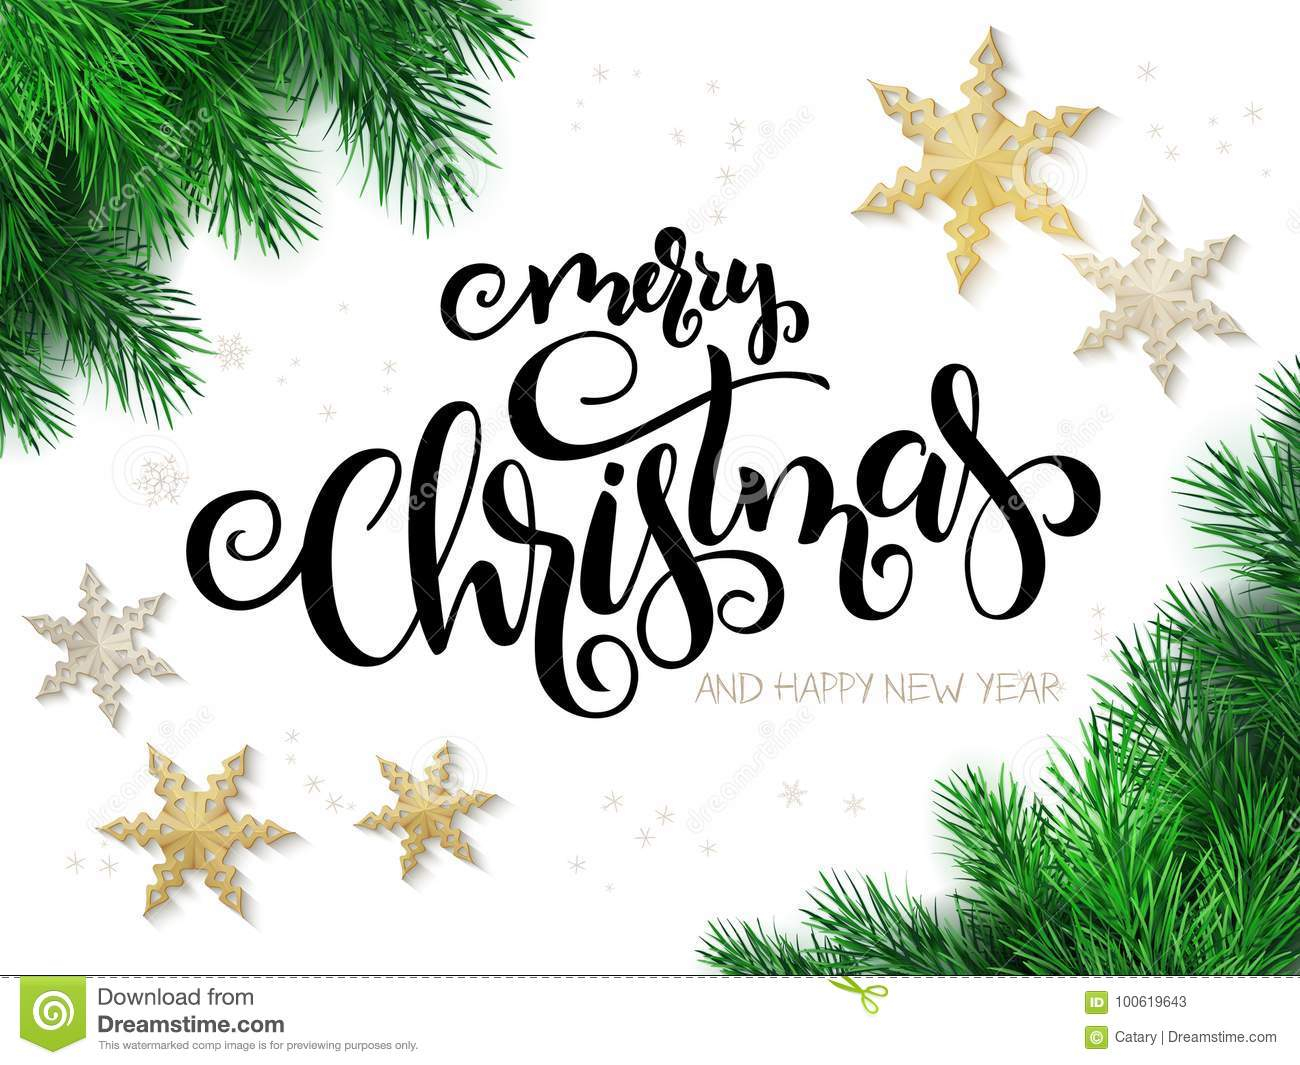 Vector illustration of christmas greeting card with hand lettering download vector illustration of christmas greeting card with hand lettering label merry xmas with m4hsunfo